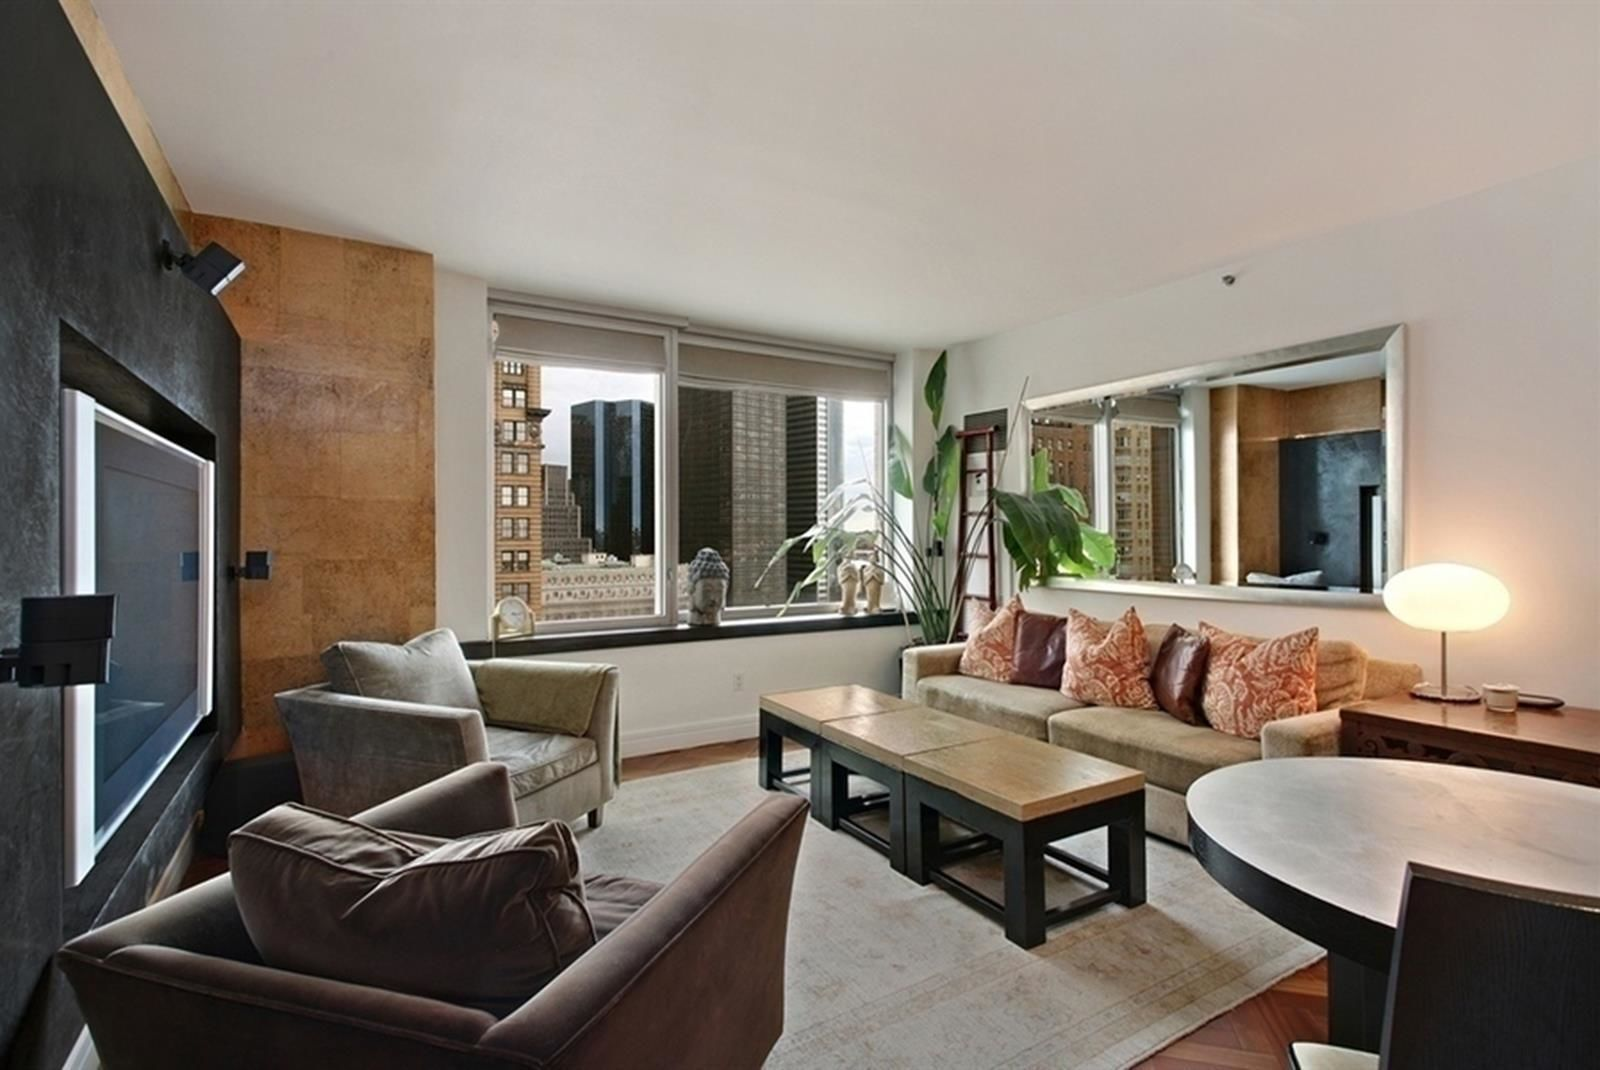 Apartment for sale at 10 West Street, Apt 18-D